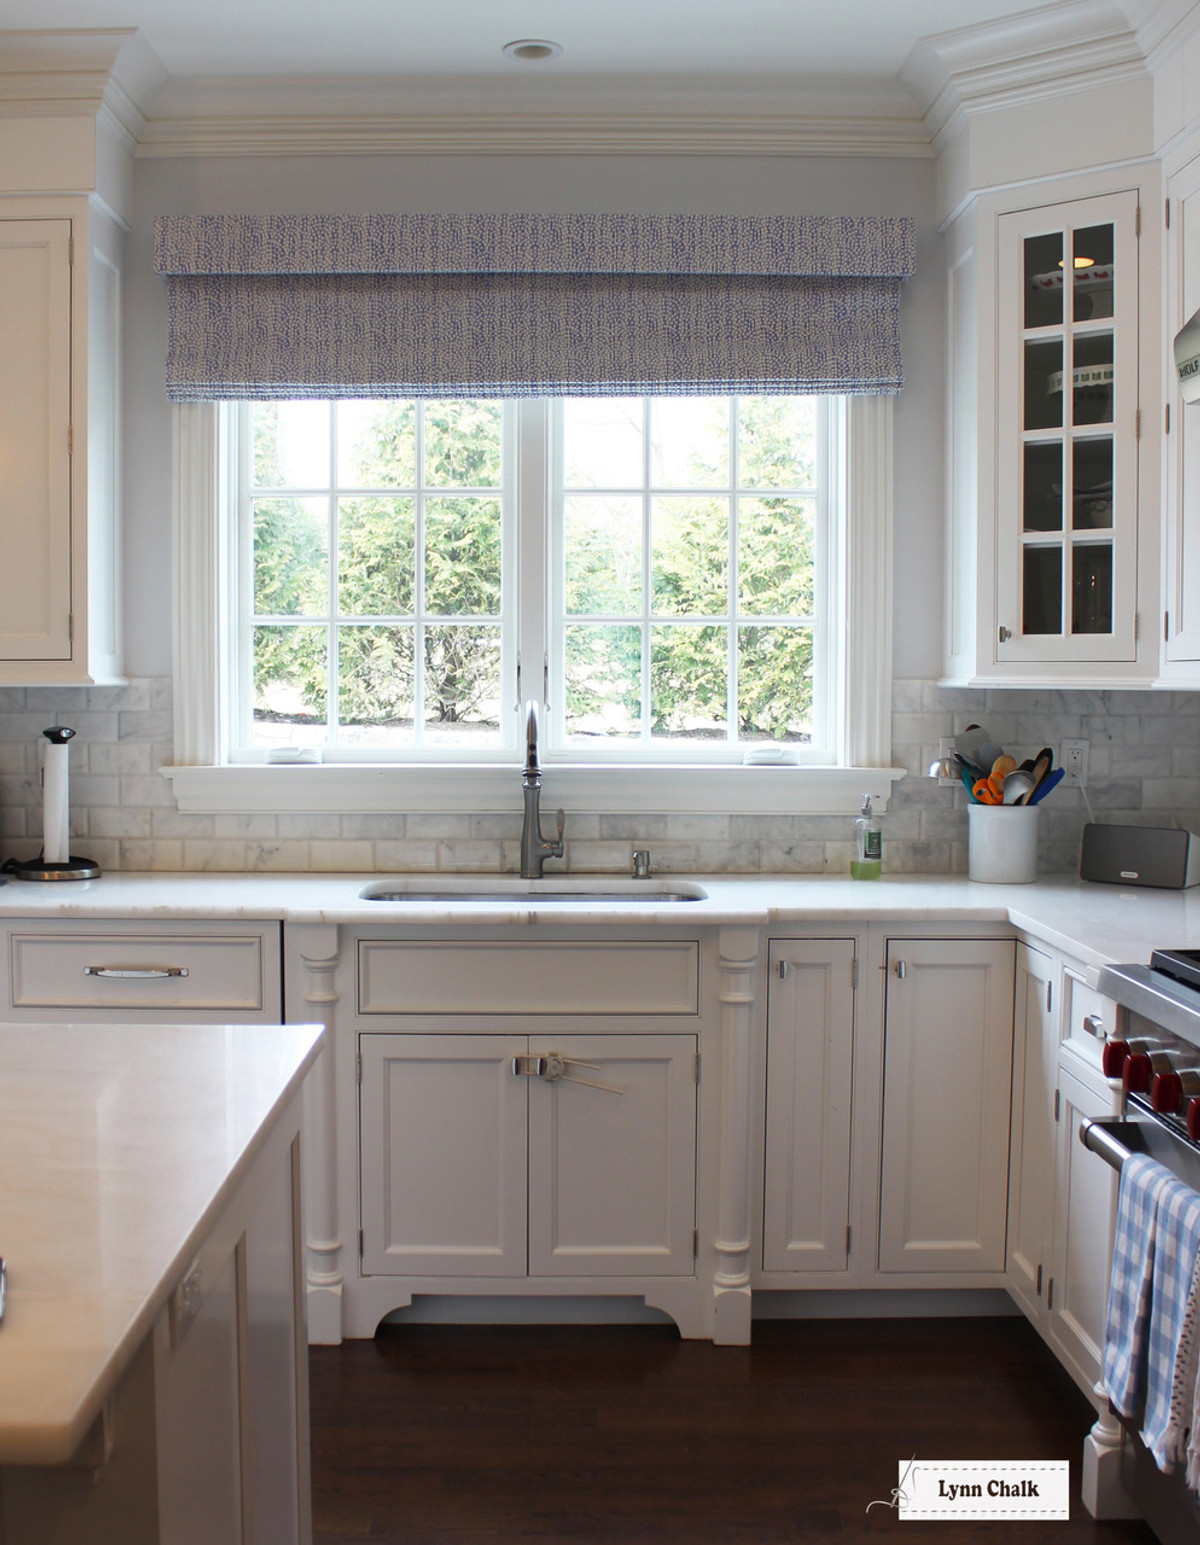 Quadrille Alan Campbell Mojave Roman Shades in Kitchen (shown in  Periwinkle-comes on other colors)